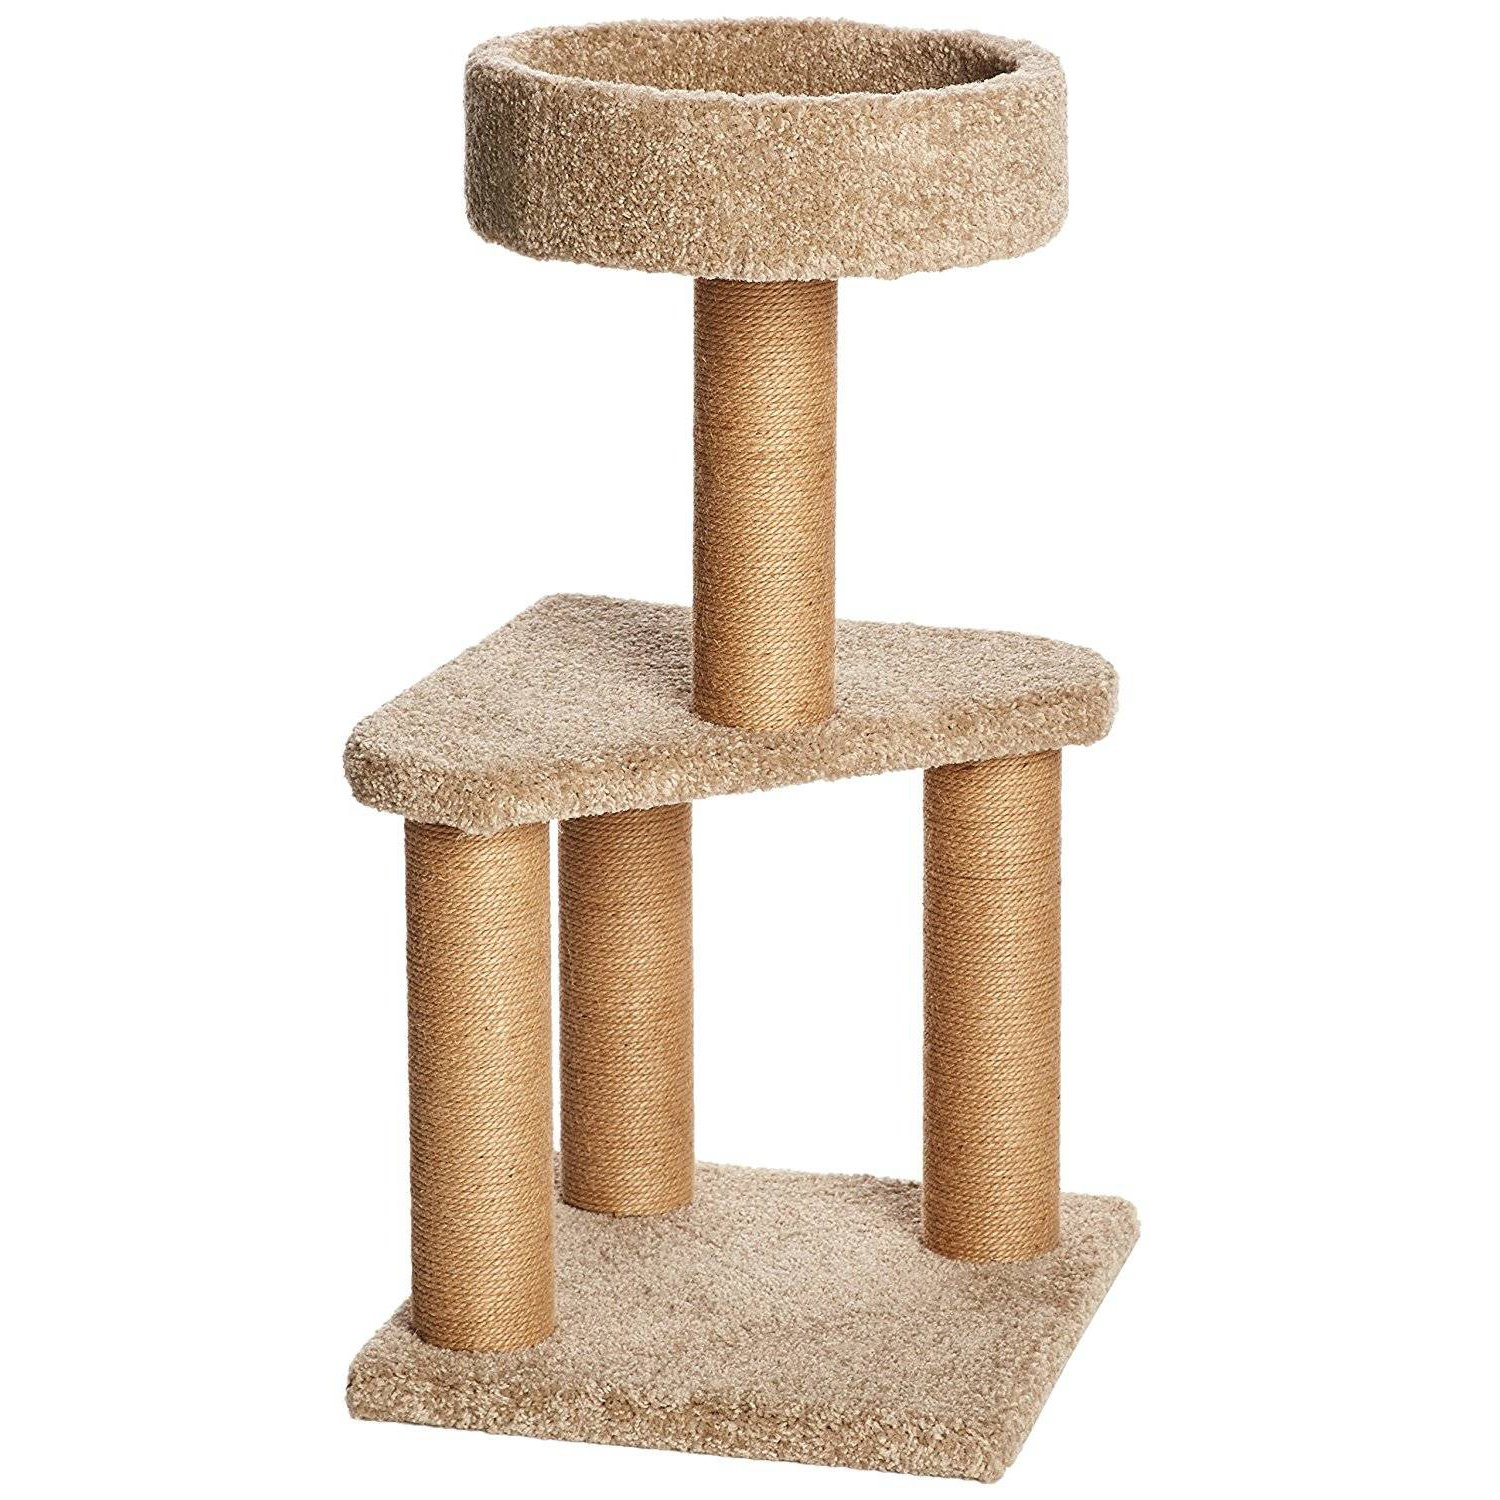 Cat climbing frame cat litter cat tree big cat sisal cat scratching cat cat jumping platform cat environmental toys M by SHUTAO (Image #1)